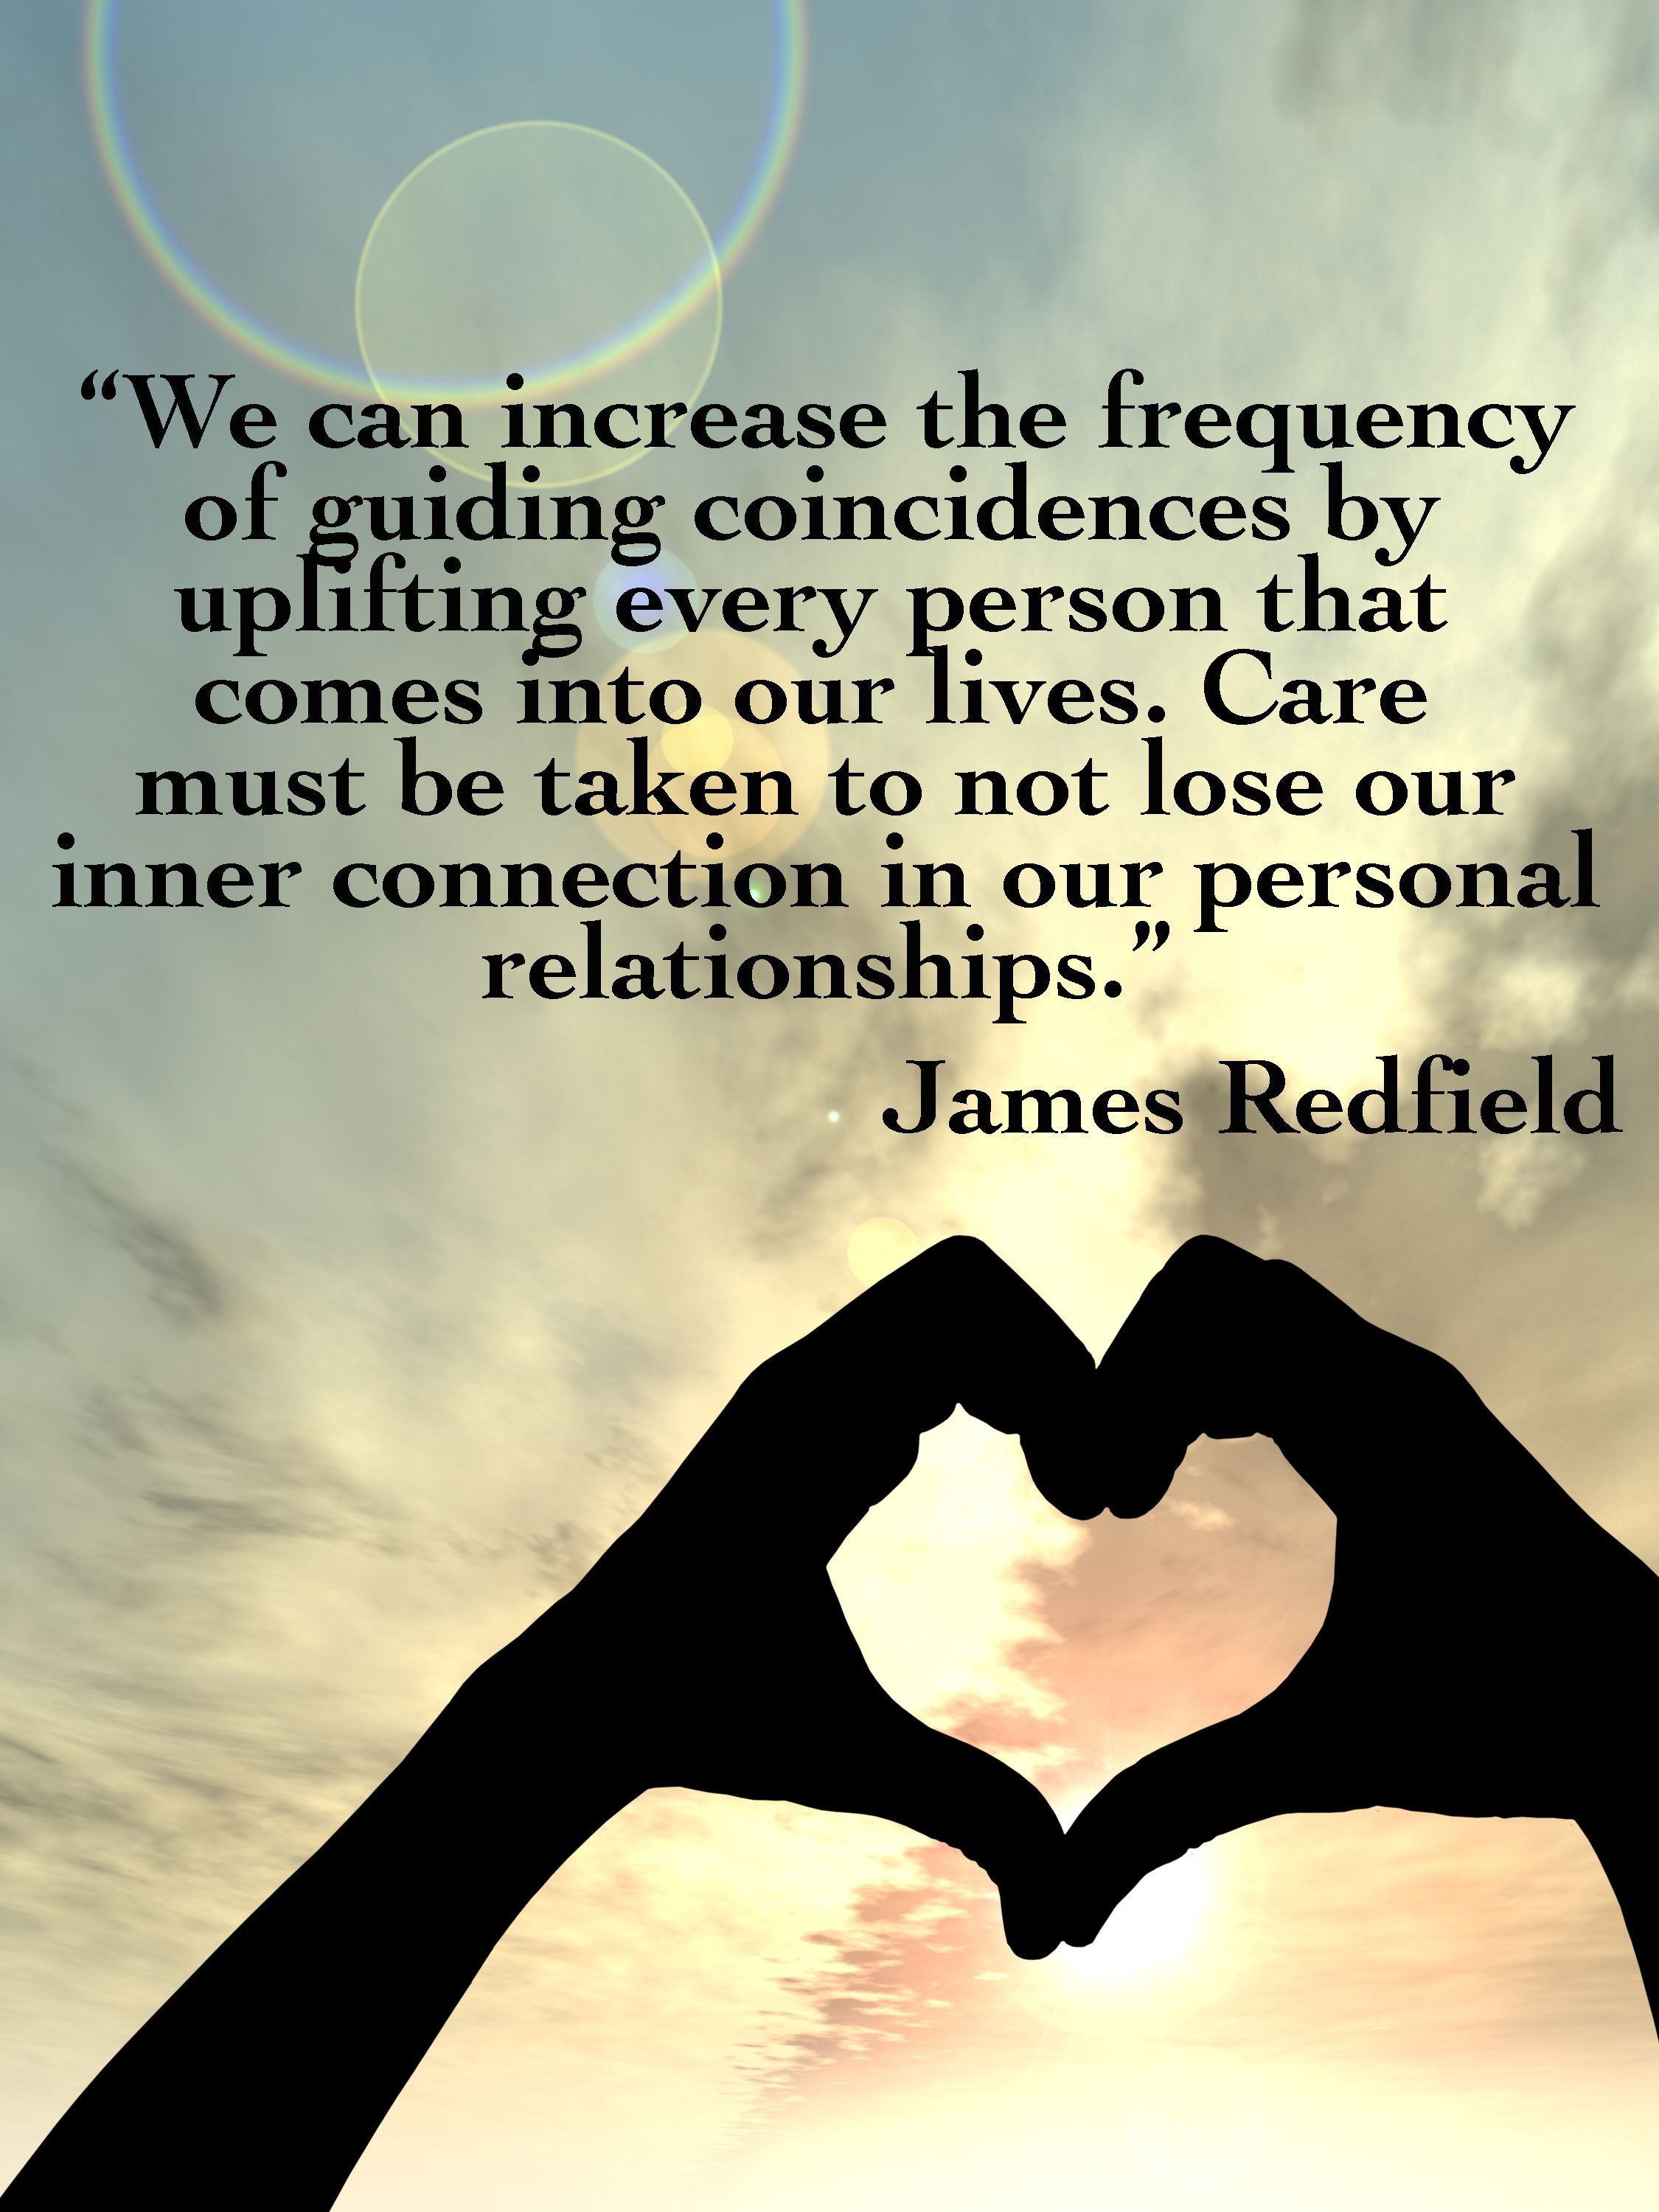 Spiritual Quotes On Love Inspirational And Spiritual Quotesjames Redfield  Celestine